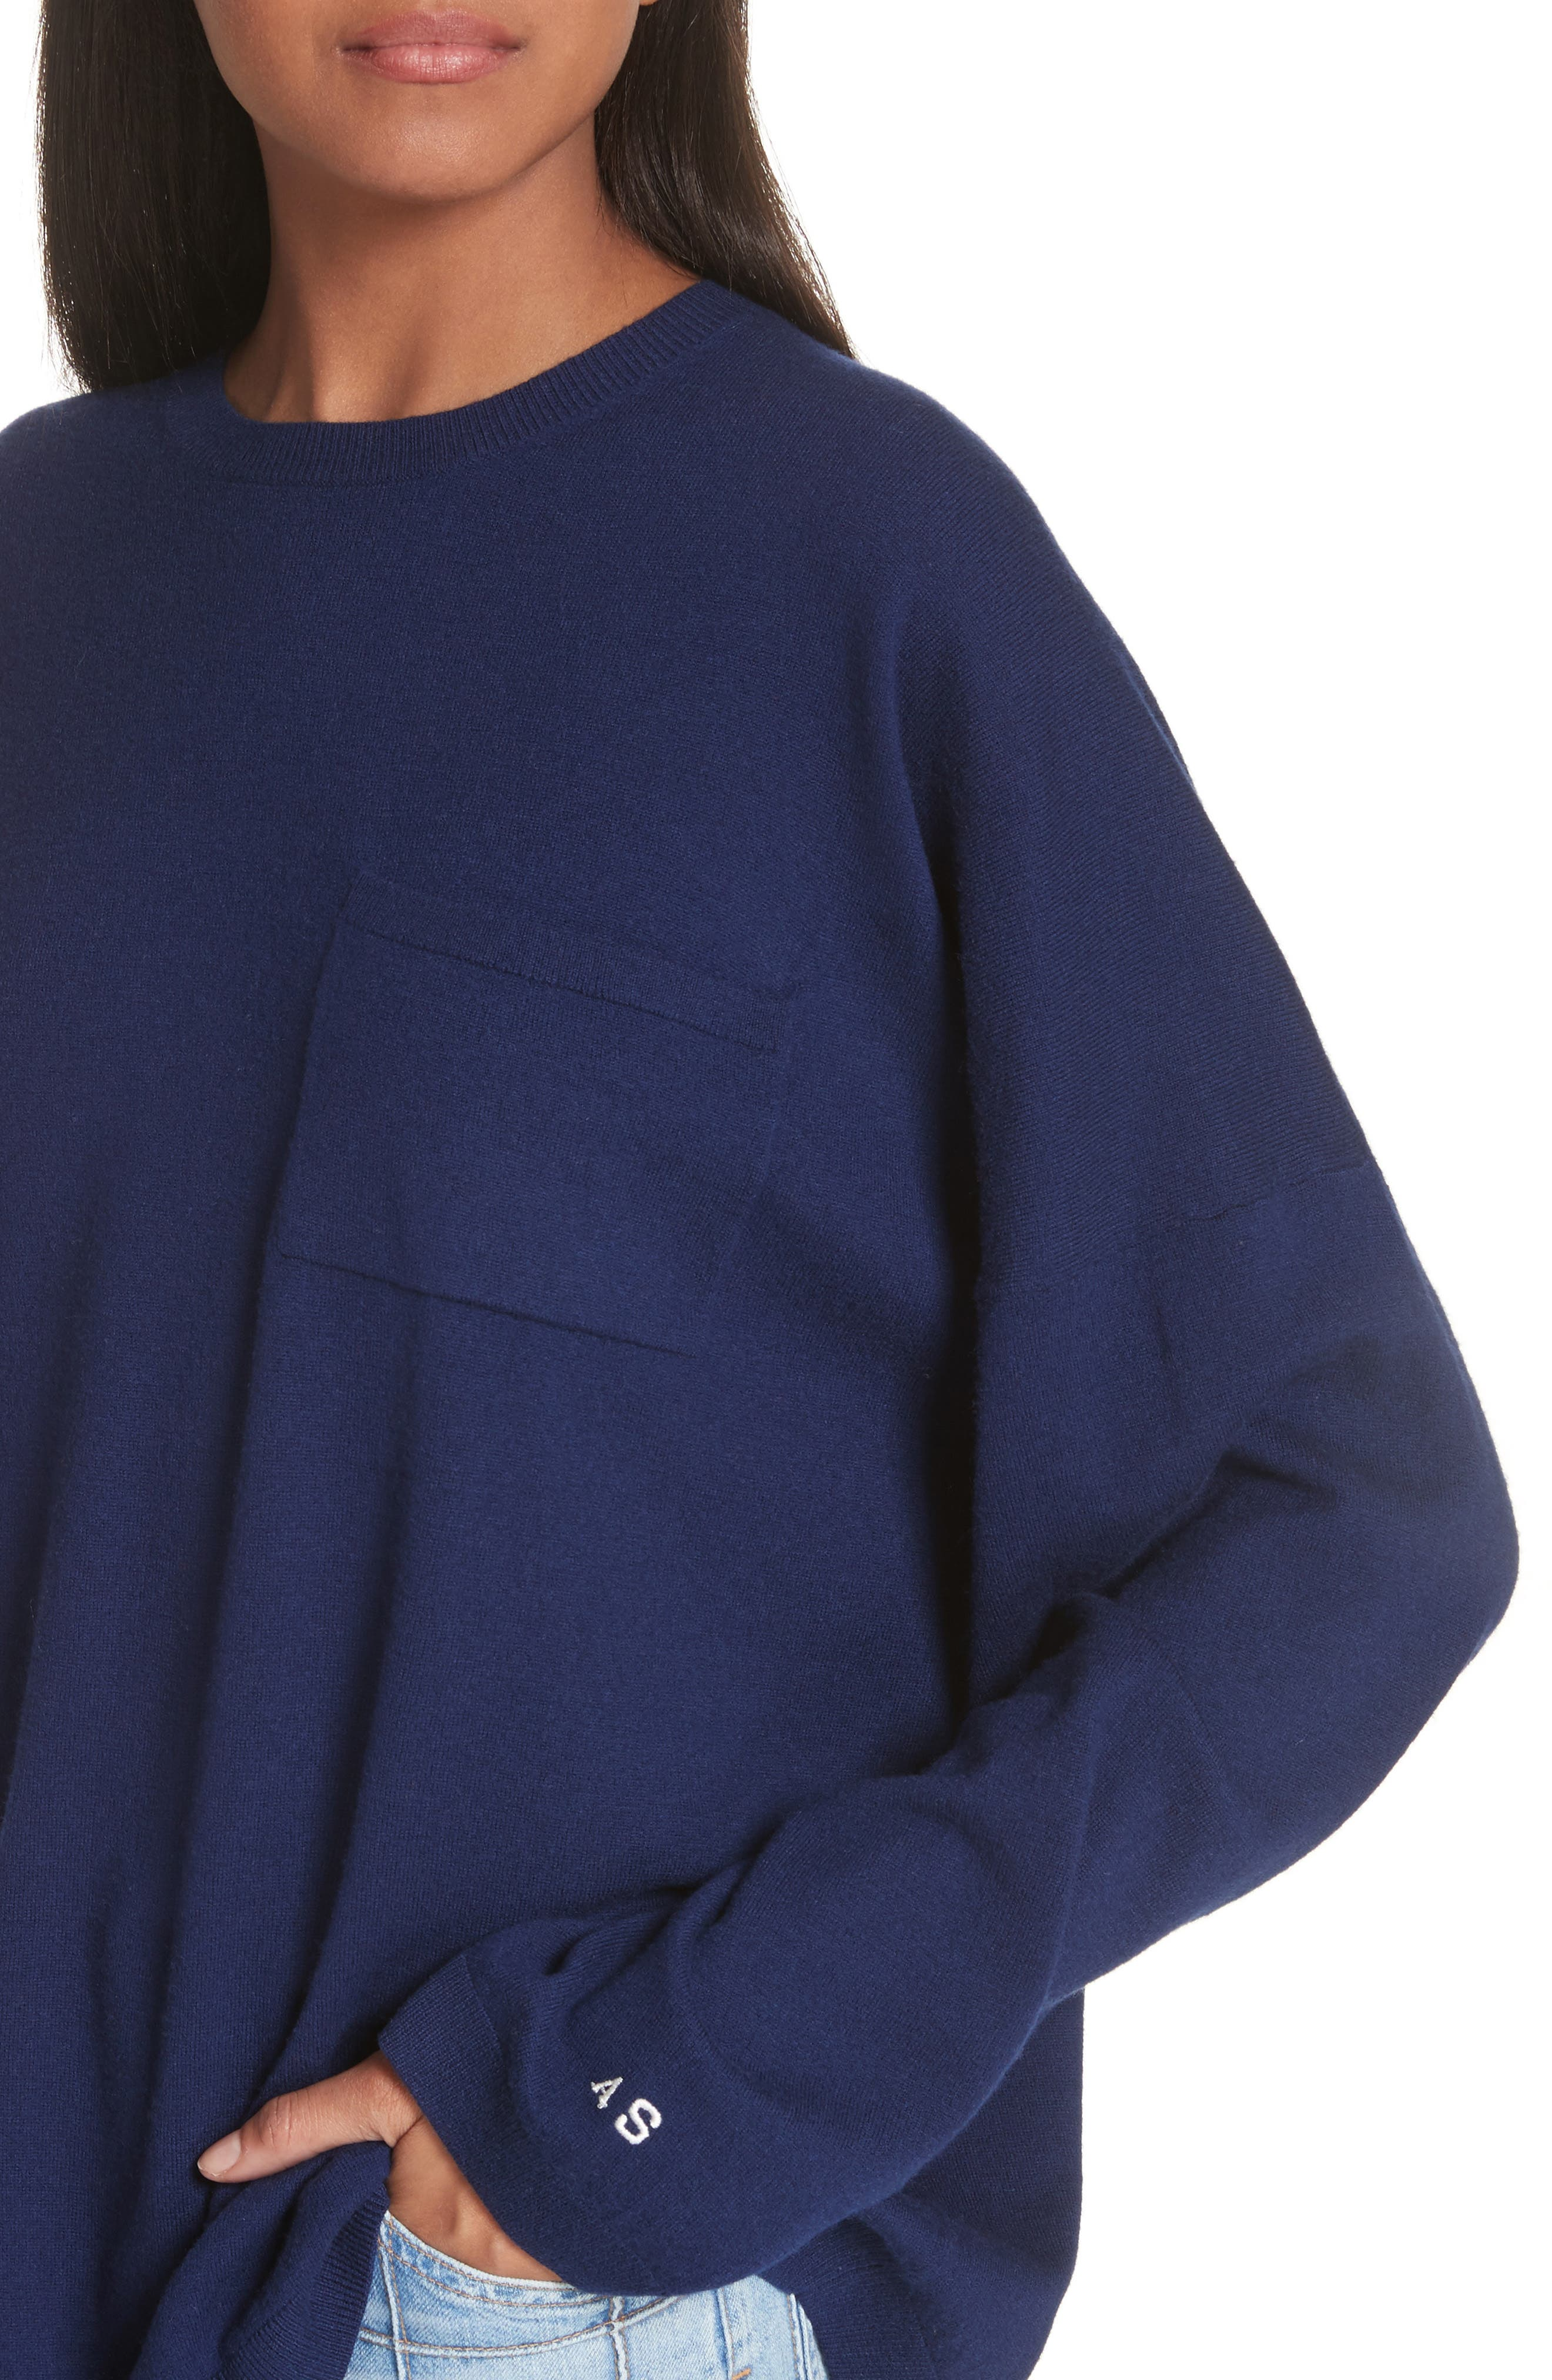 Libby Wool Sweater,                             Alternate thumbnail 4, color,                             Navy